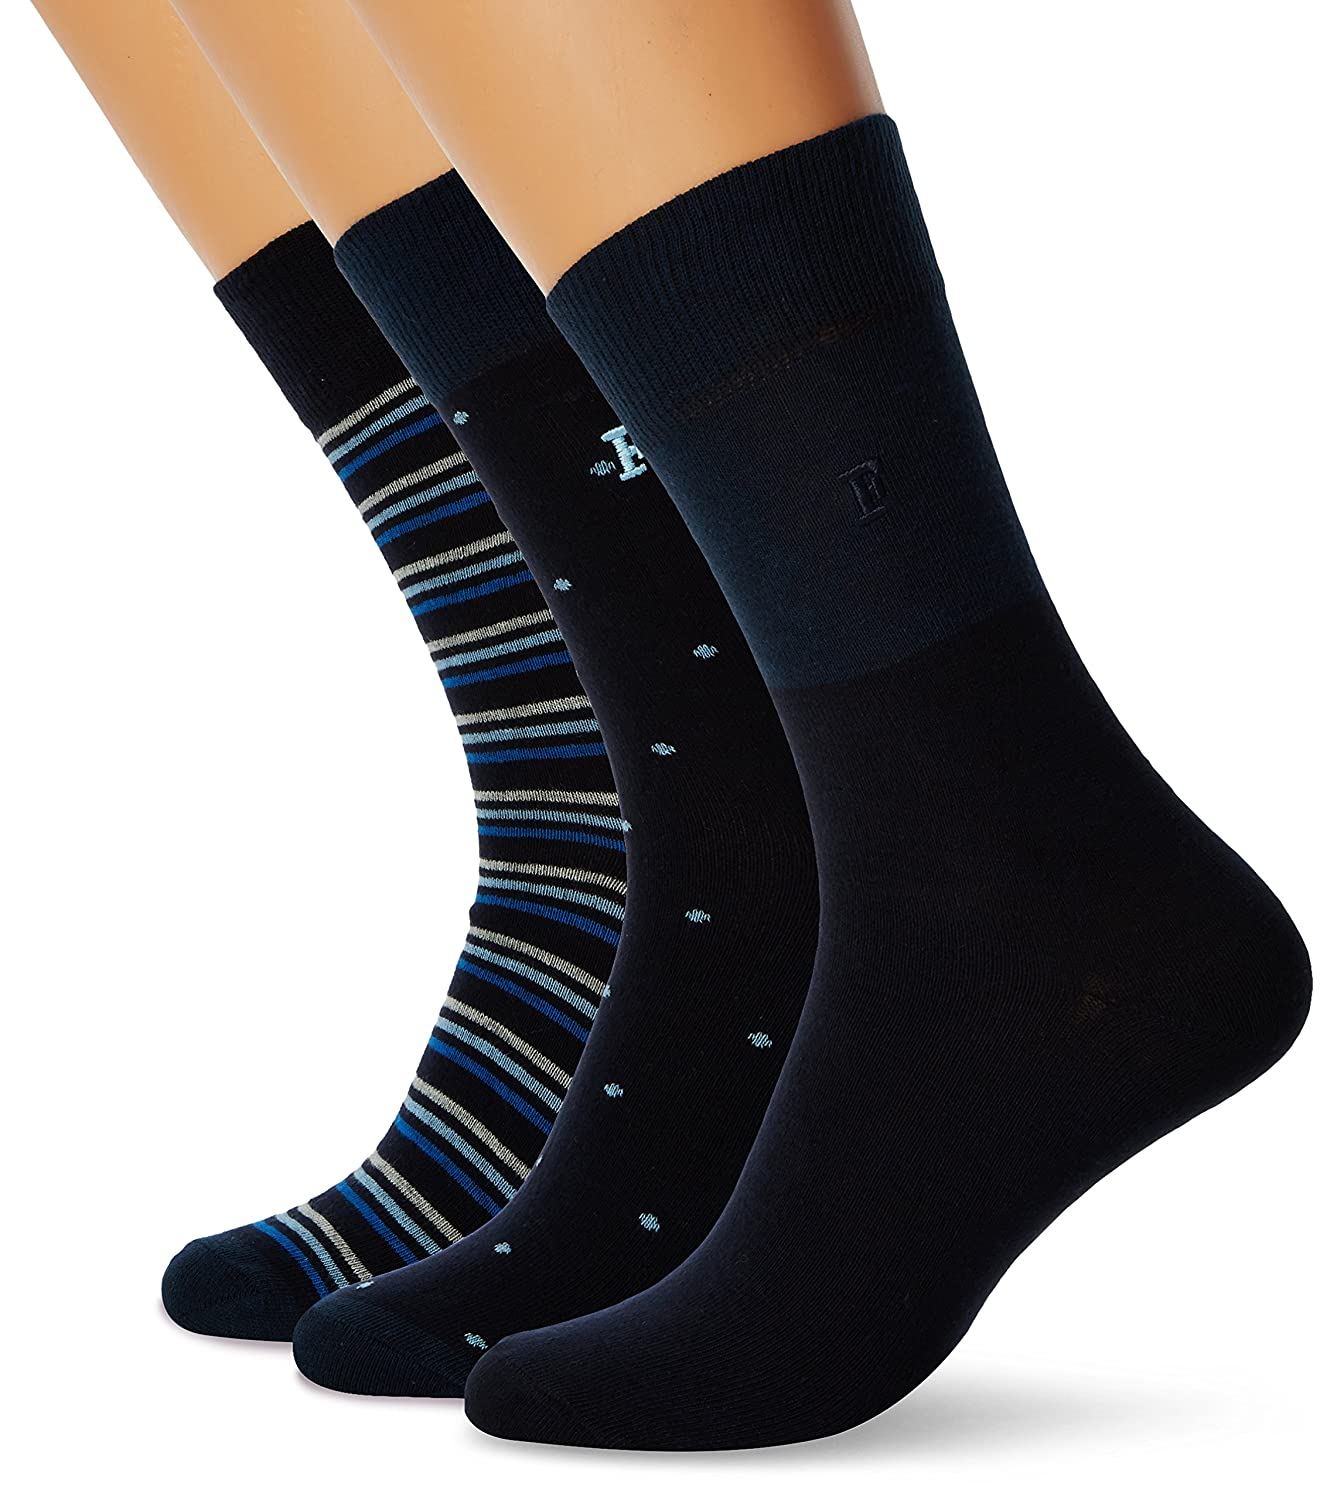 French Connection Calcetines para Hombre Pack de 3